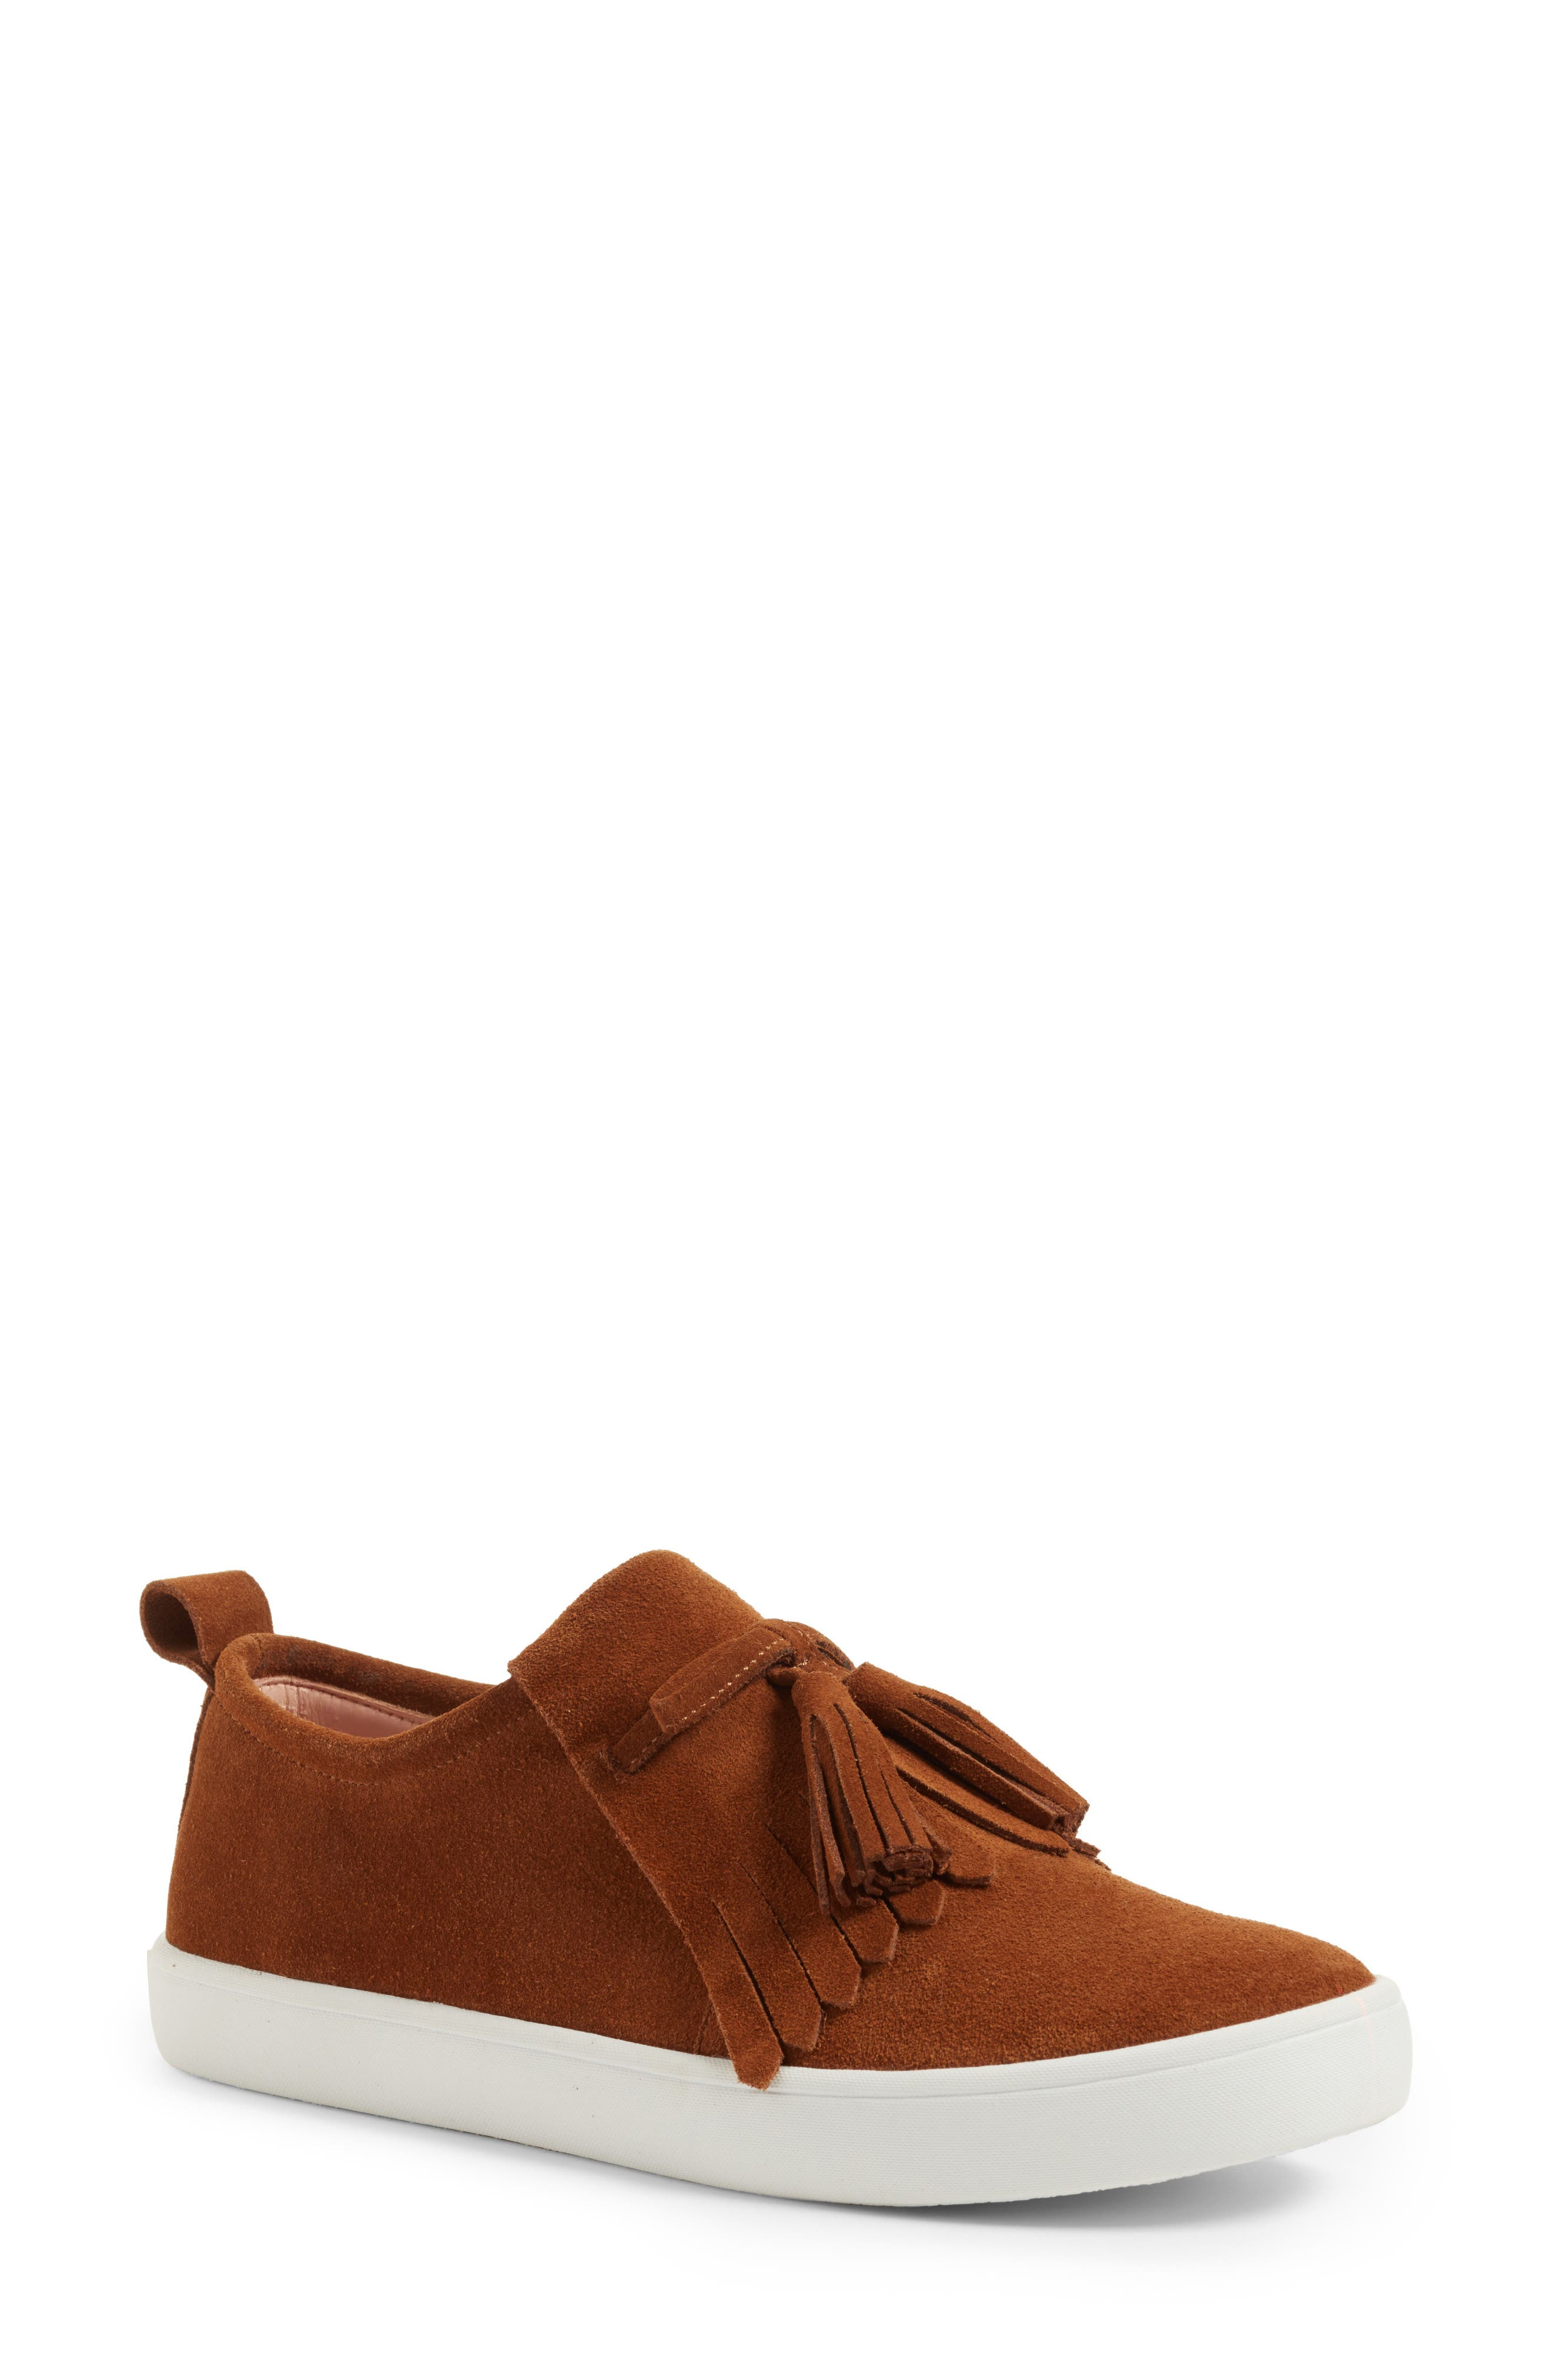 lenna tassel sneaker,                         Main,                         color, Whiskey Suede